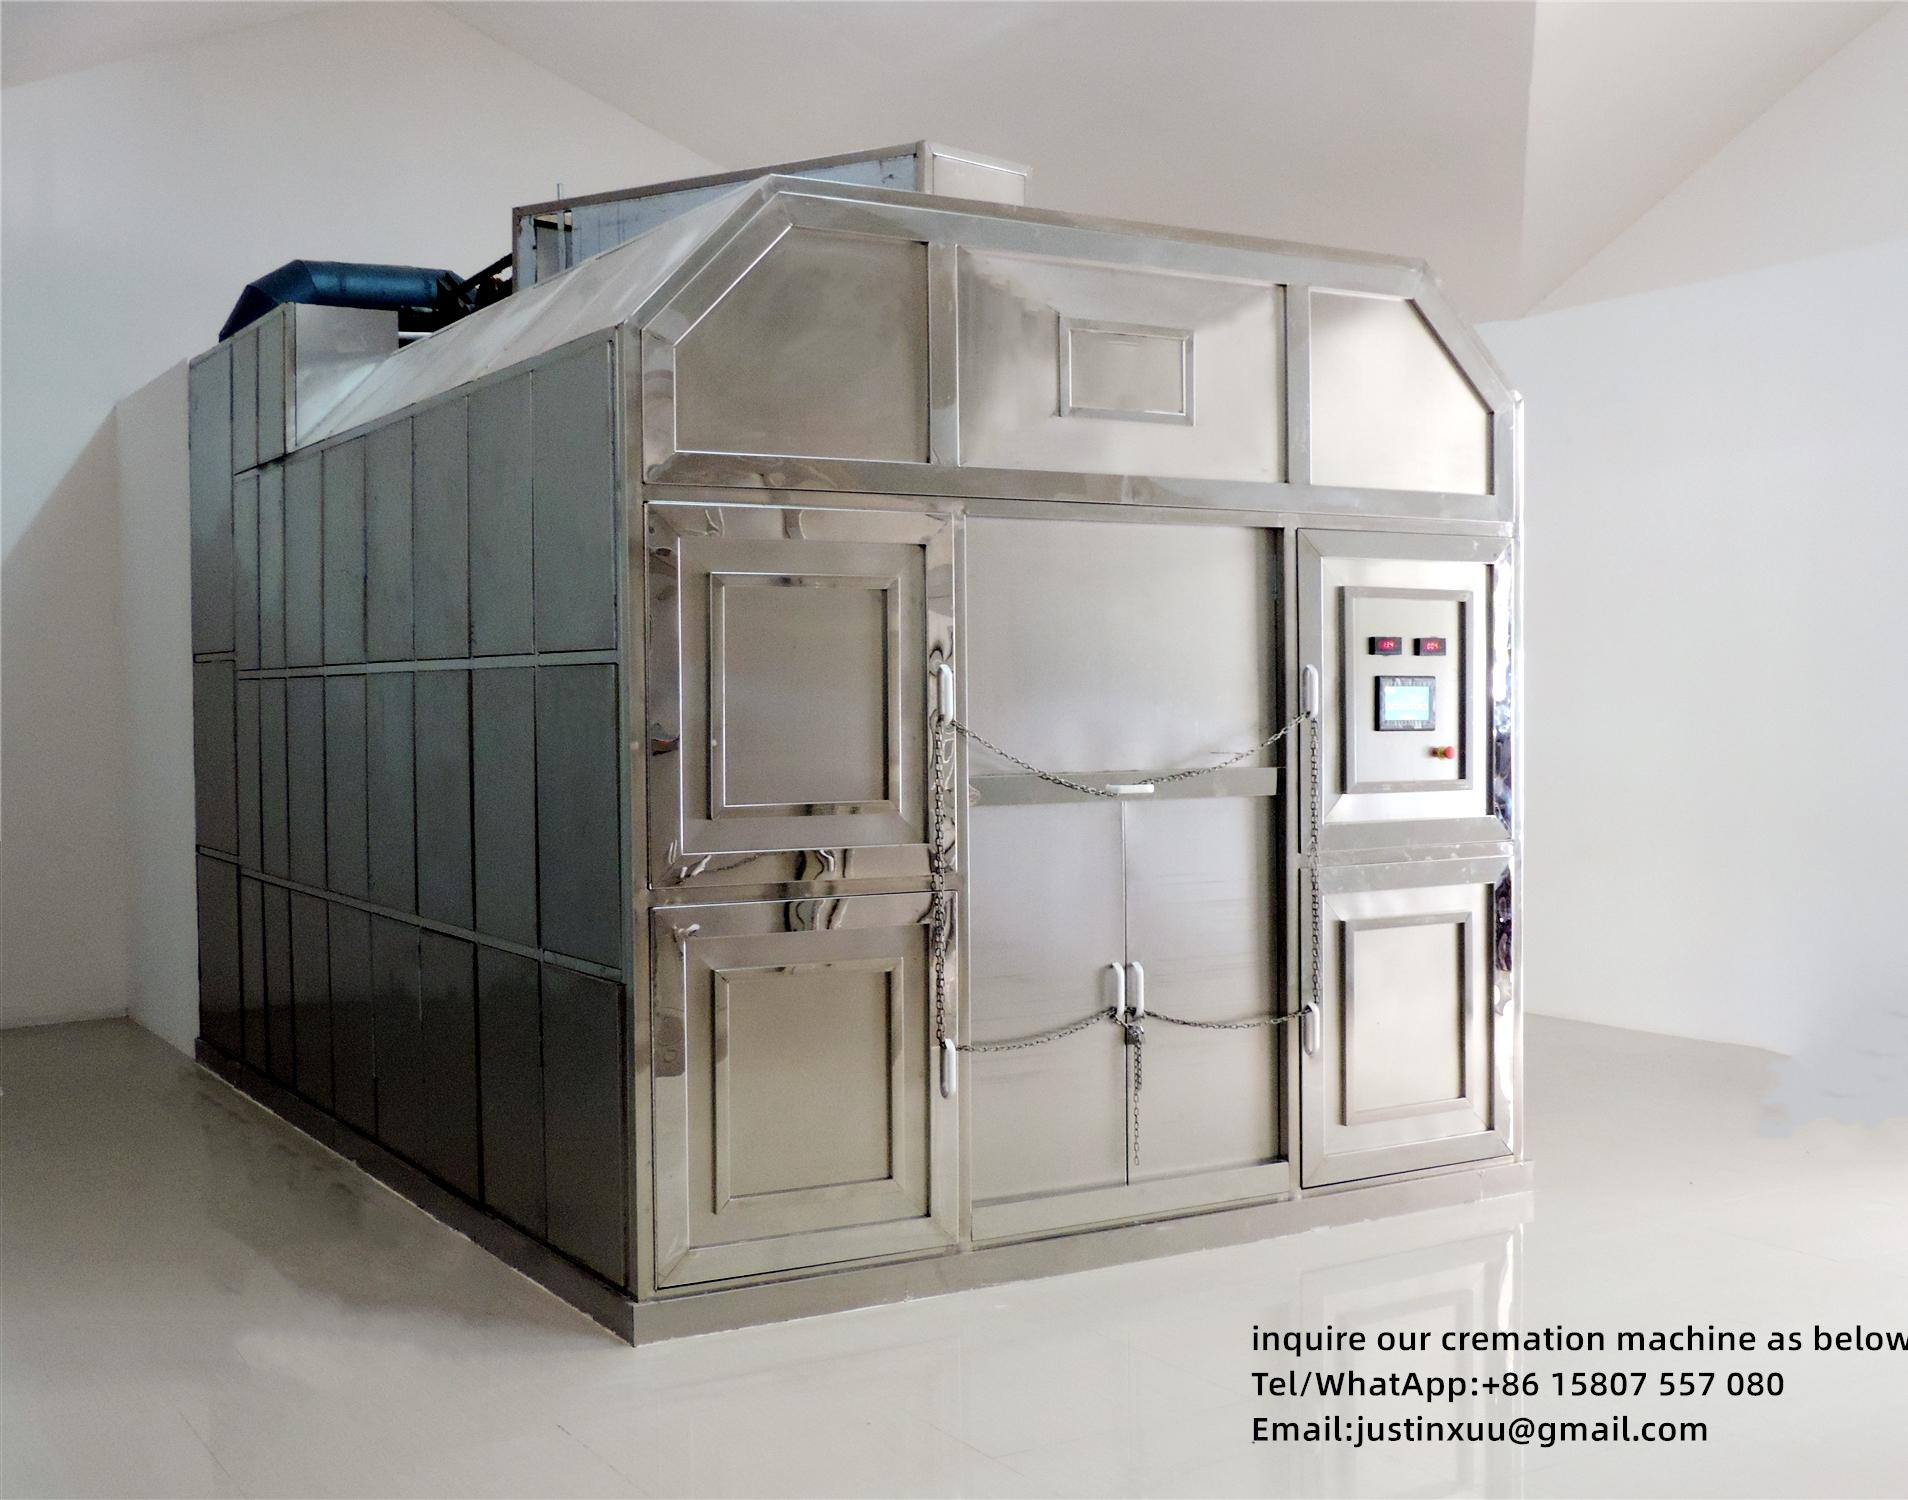 Sell incinerator container for cremation designed human for South Africa market  7